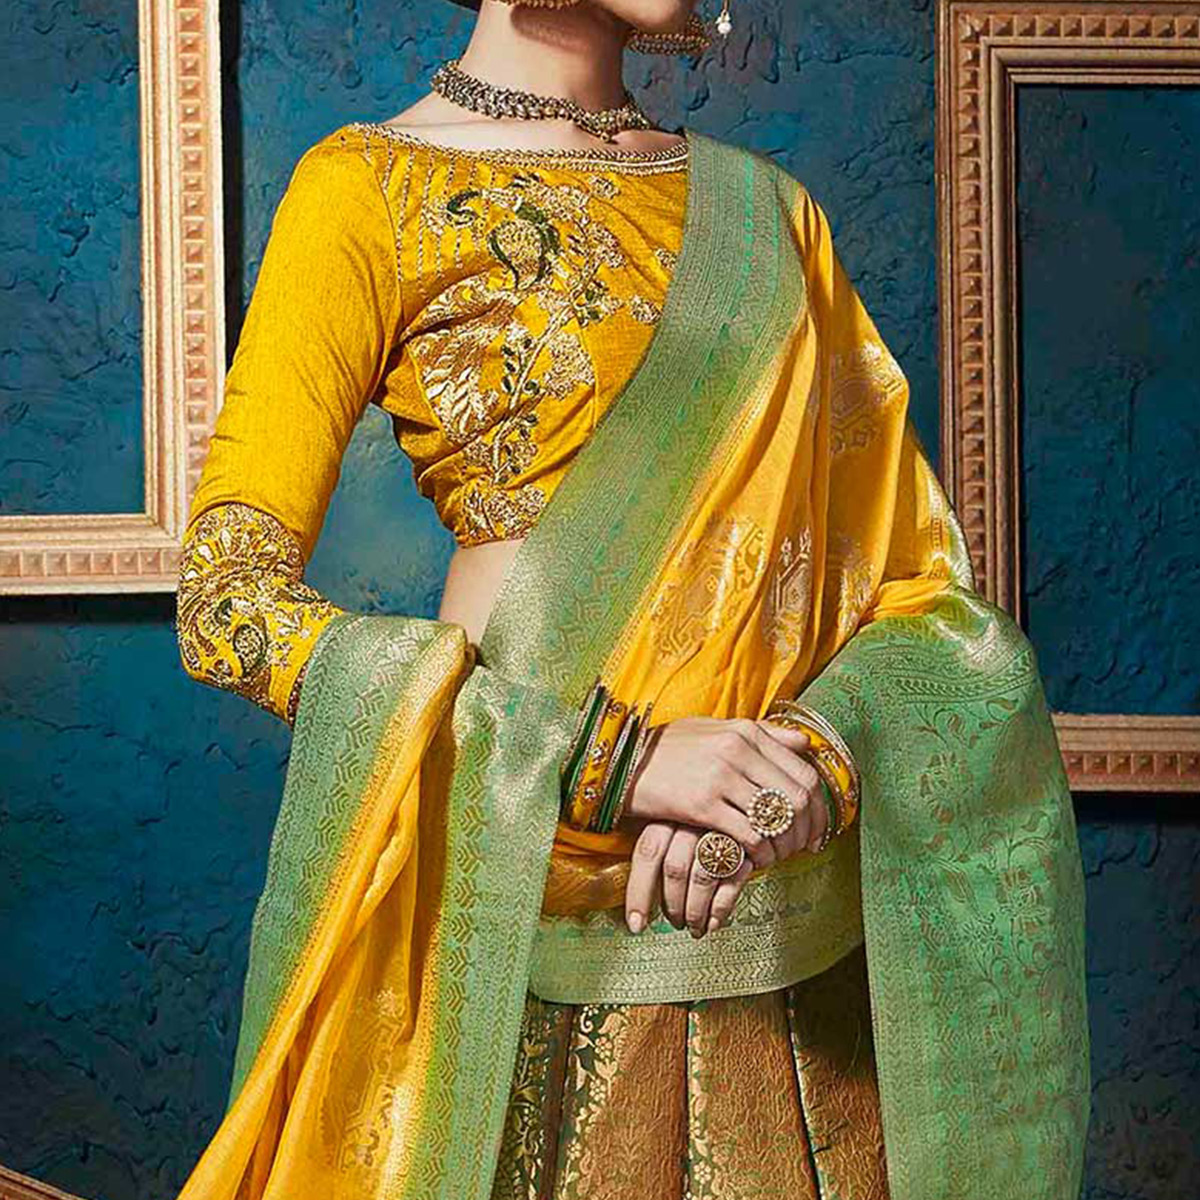 Sensational Golden-Yellow Pure Silk Jacquard Designer Lehenga Choli